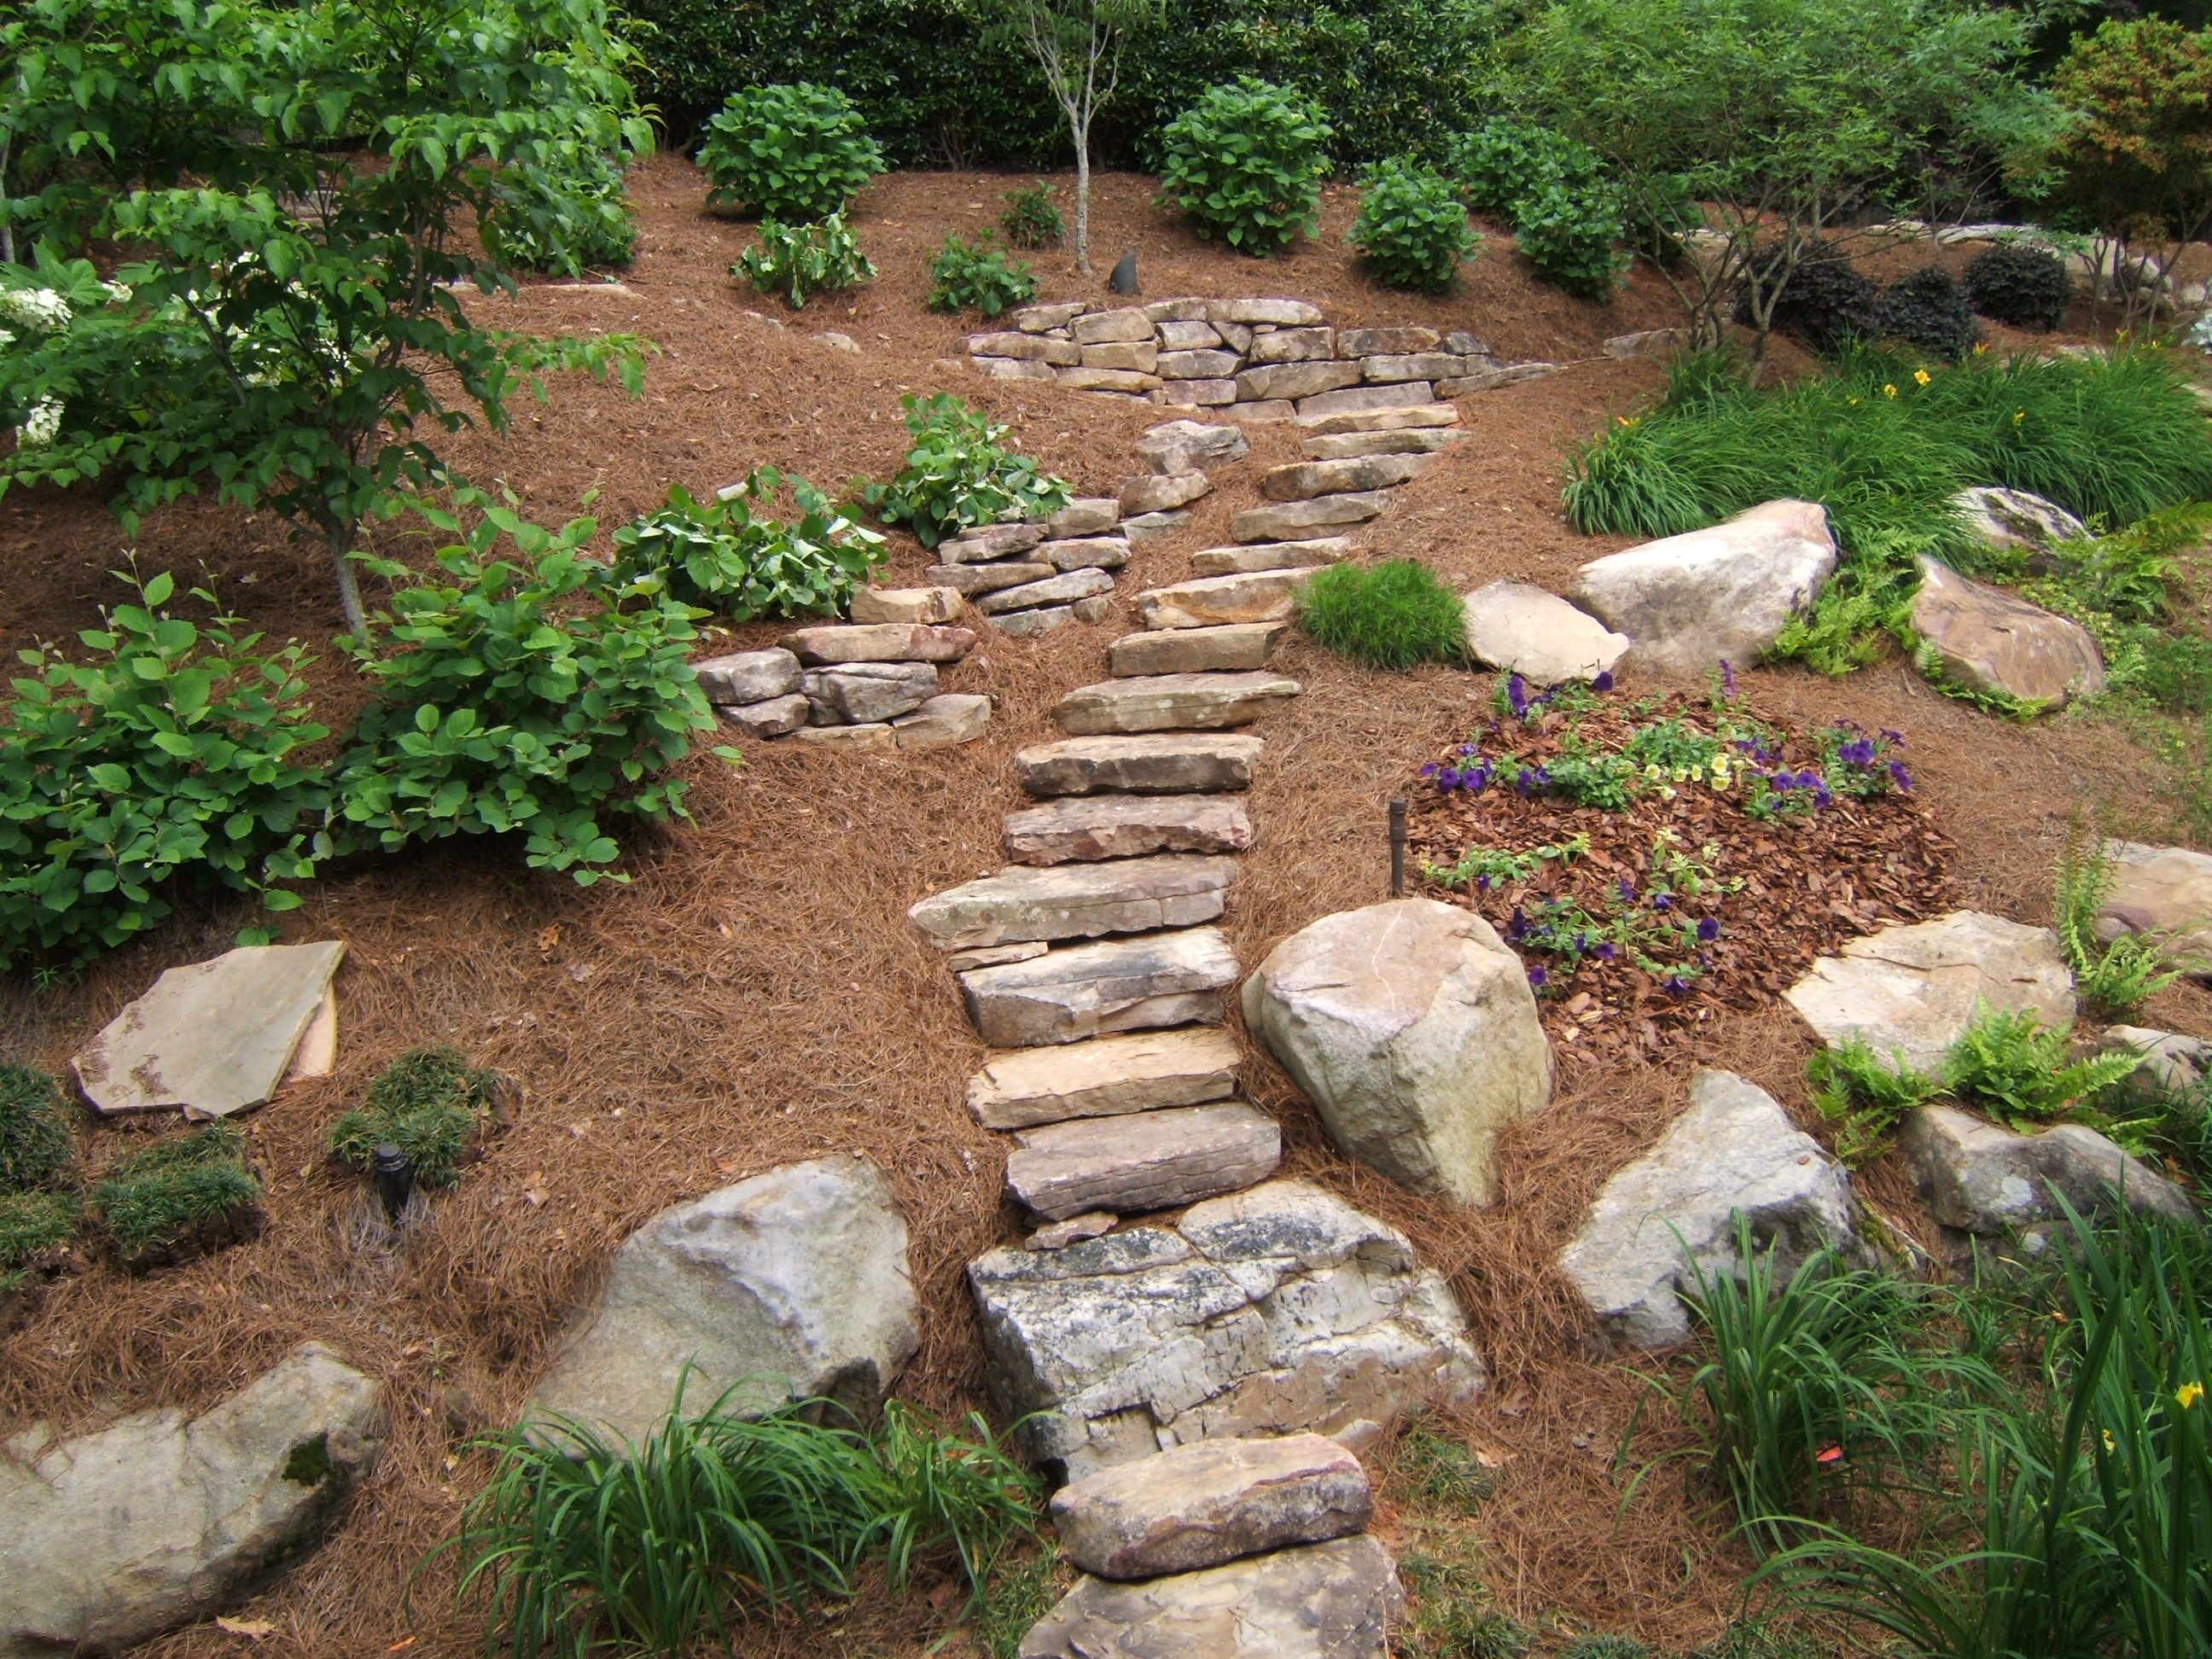 Rye Stairs After 001 343125324 Jpg Jpeg Image 2592x1944 Pixels Scaled 29 Landscaping With Rocks Hillside Landscaping Steep Hillside Landscaping